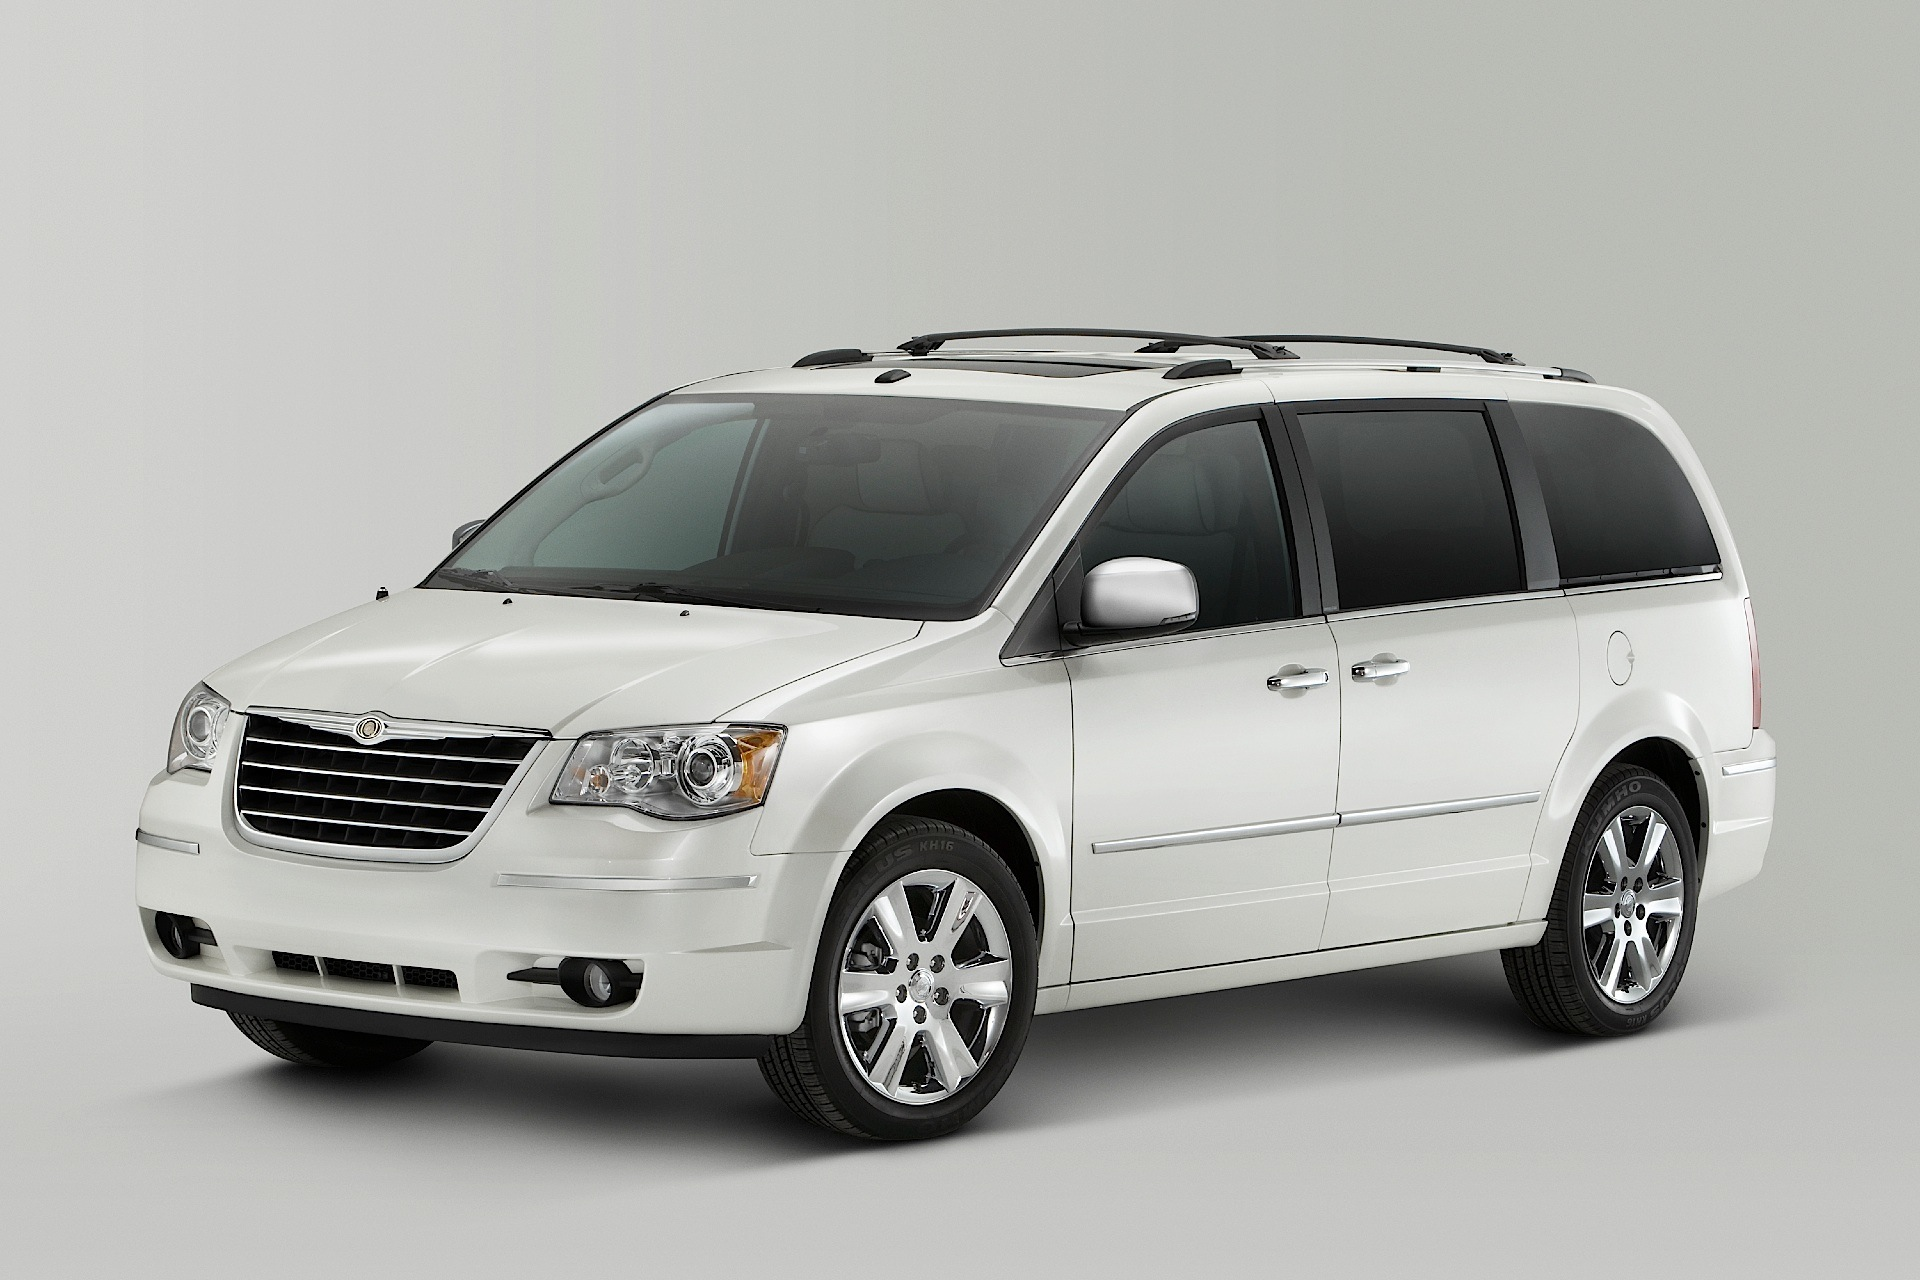 Pictures of chrysler town & country #8